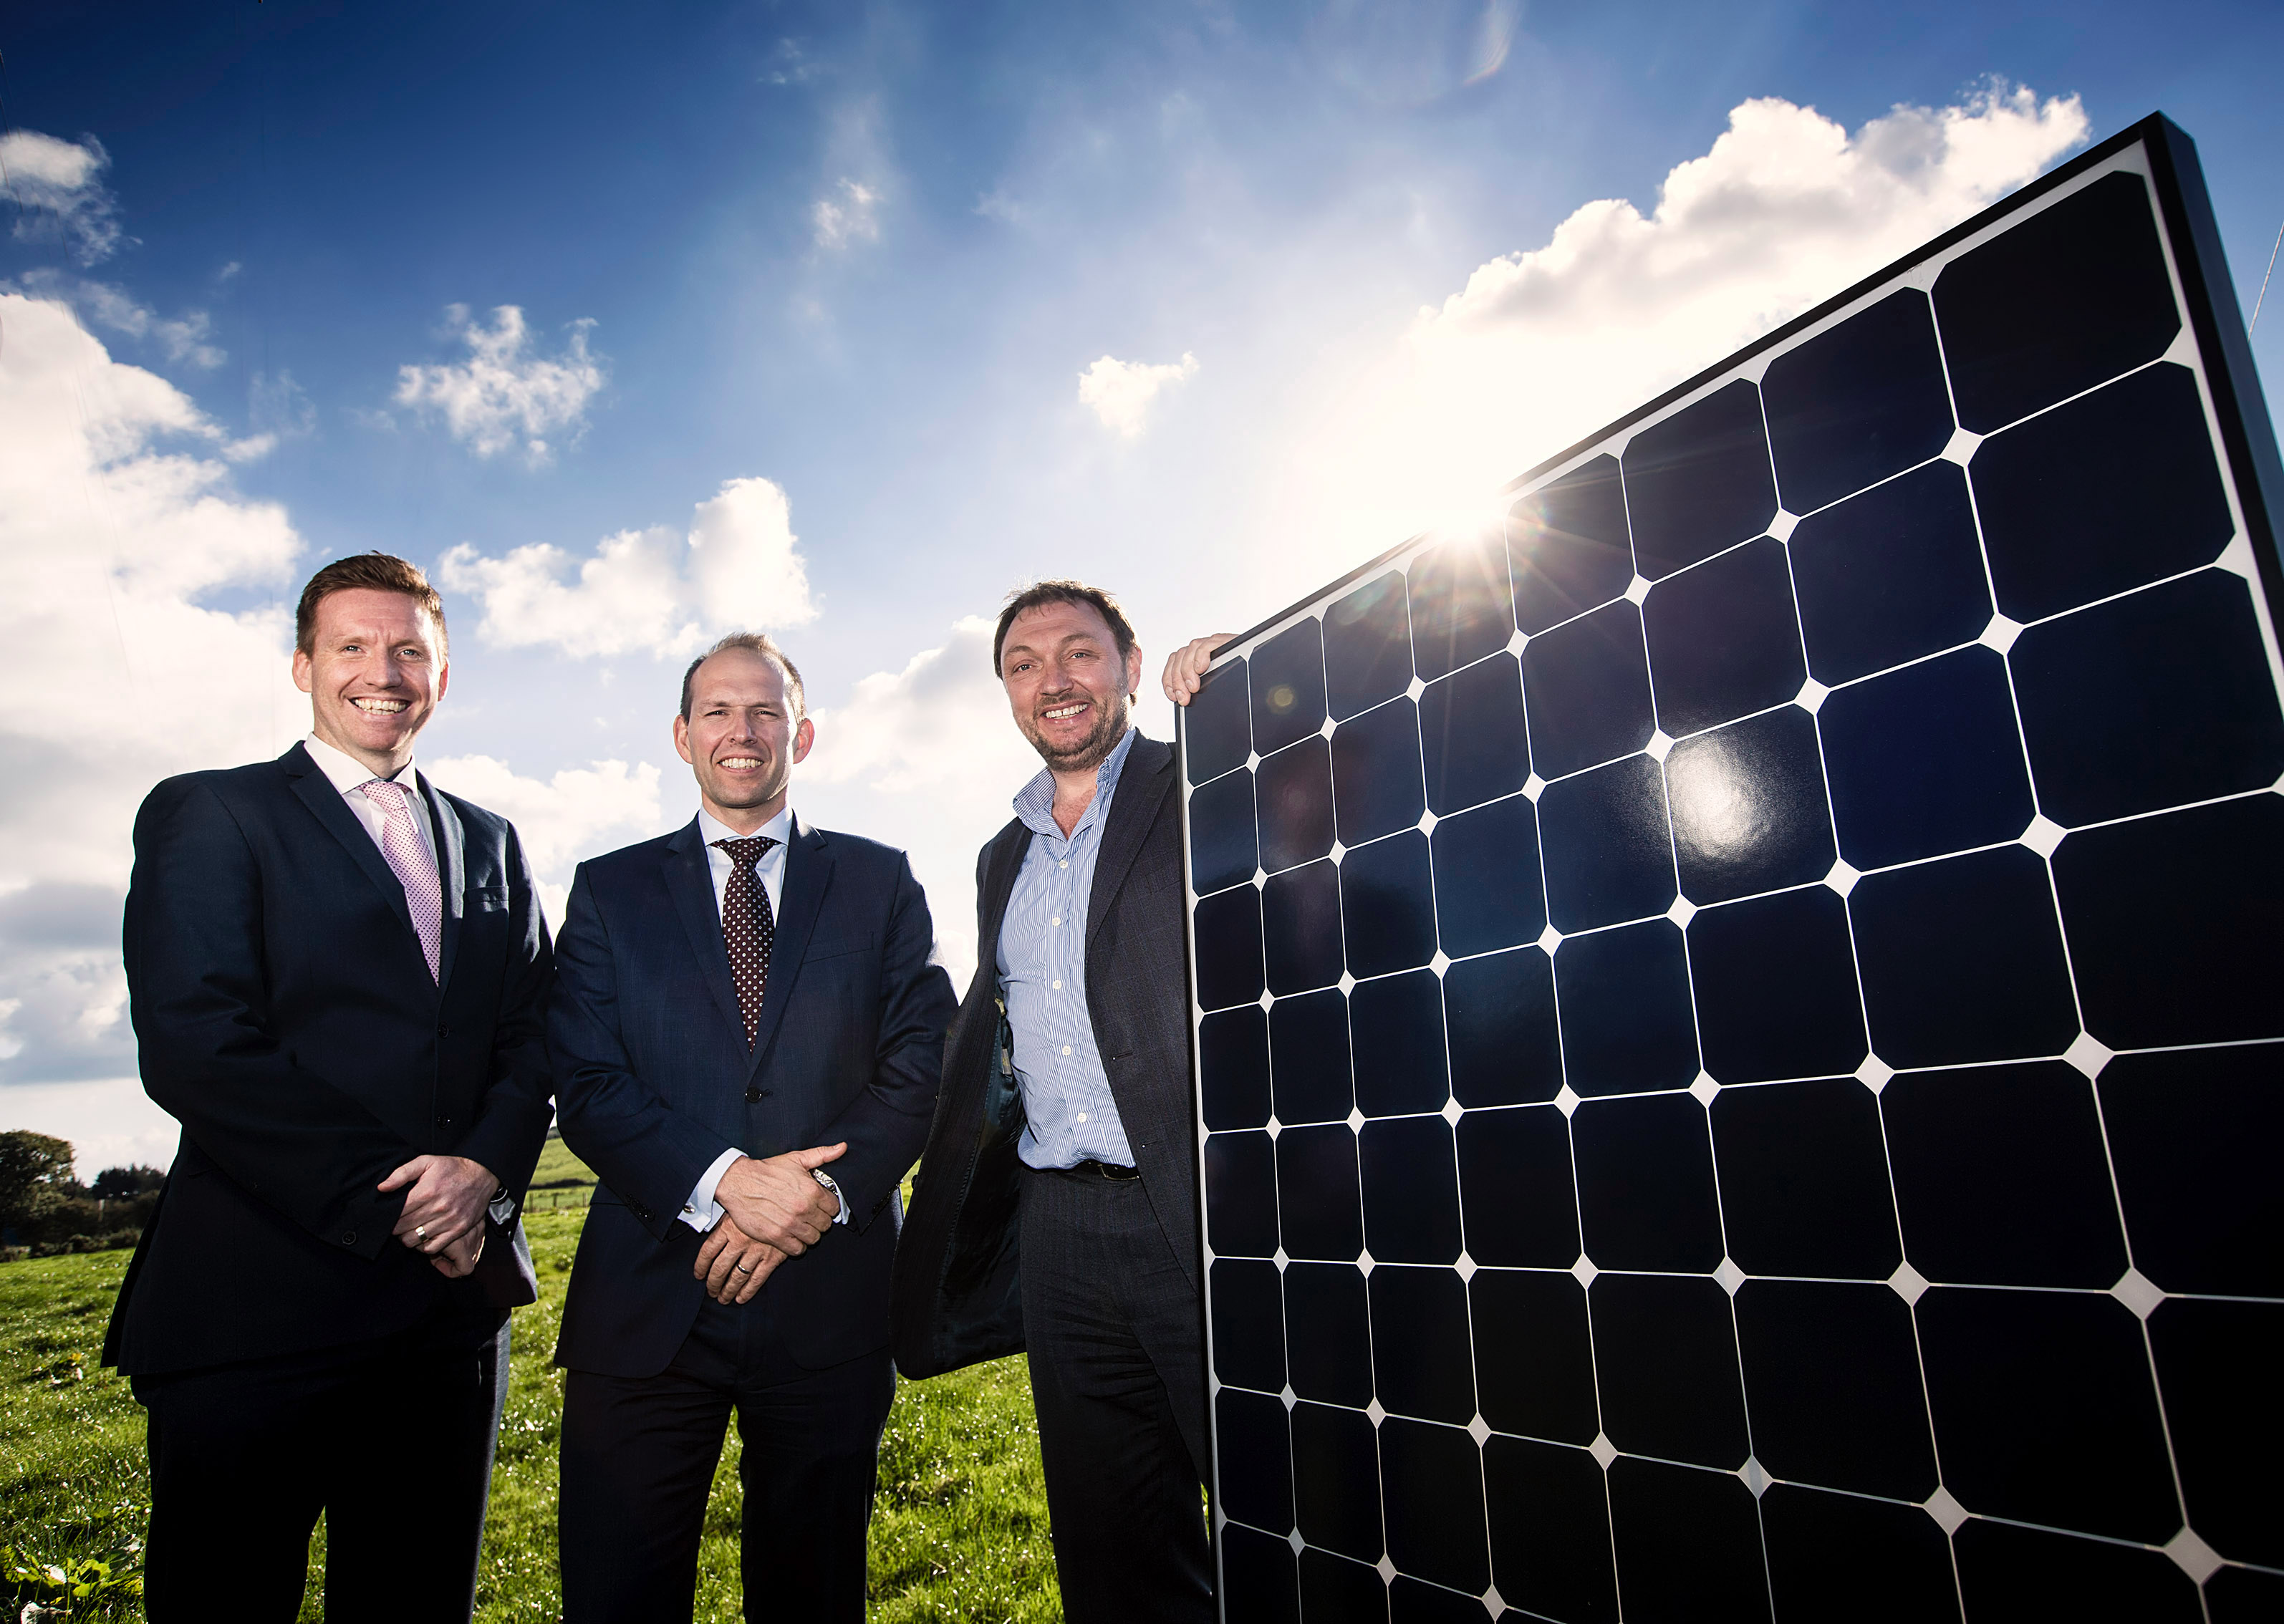 Dale Farm is soon to become a green energy leader in the dairy sector worldwide following the confirmation of a new build 'private wire' solar farm in Cookstown, County Tyrone. Pictured at the annoucement is Dale Farm Group Operations Director, Chris McAlinden, alongside Group Chief Executive of Dale Farm Nick Whelan and Chief Executive of CES Energy, Tom Marren. - Ends - Photos: Brian Morrison